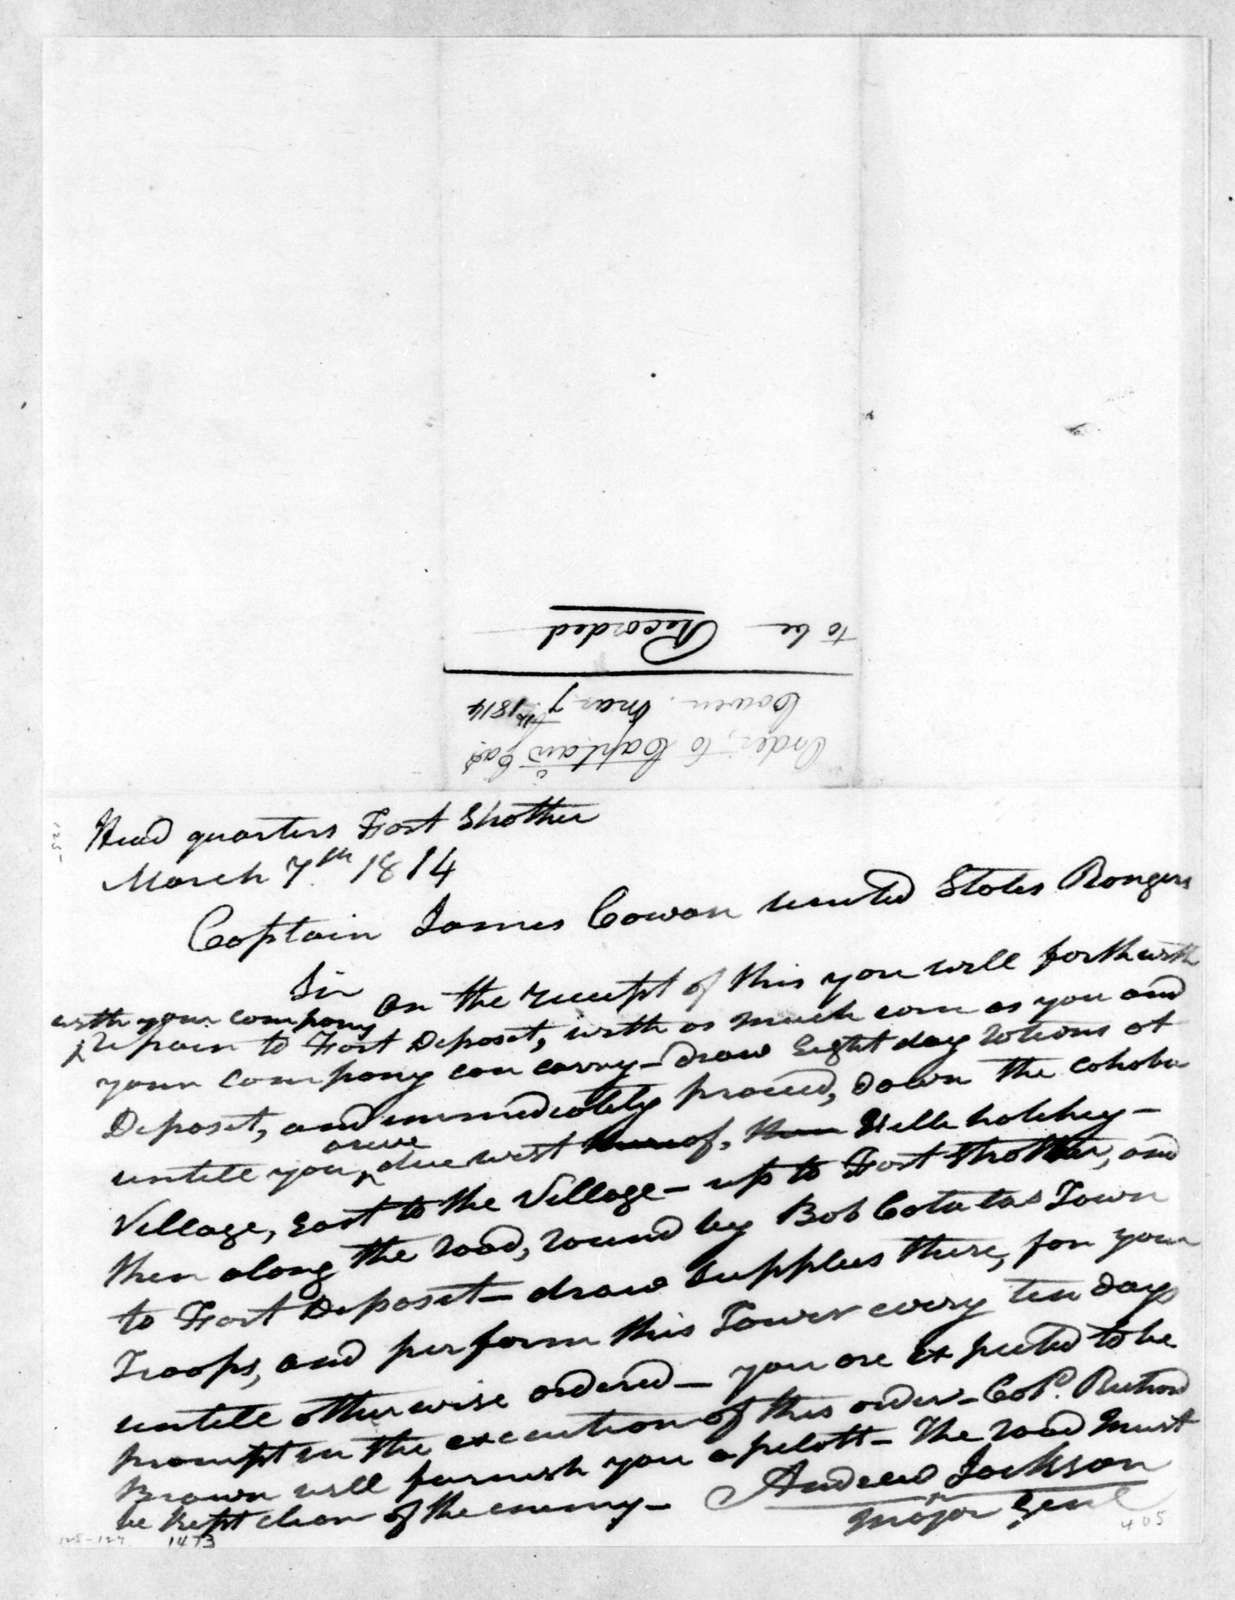 Andrew Jackson to James Cowan, March 7, 1814